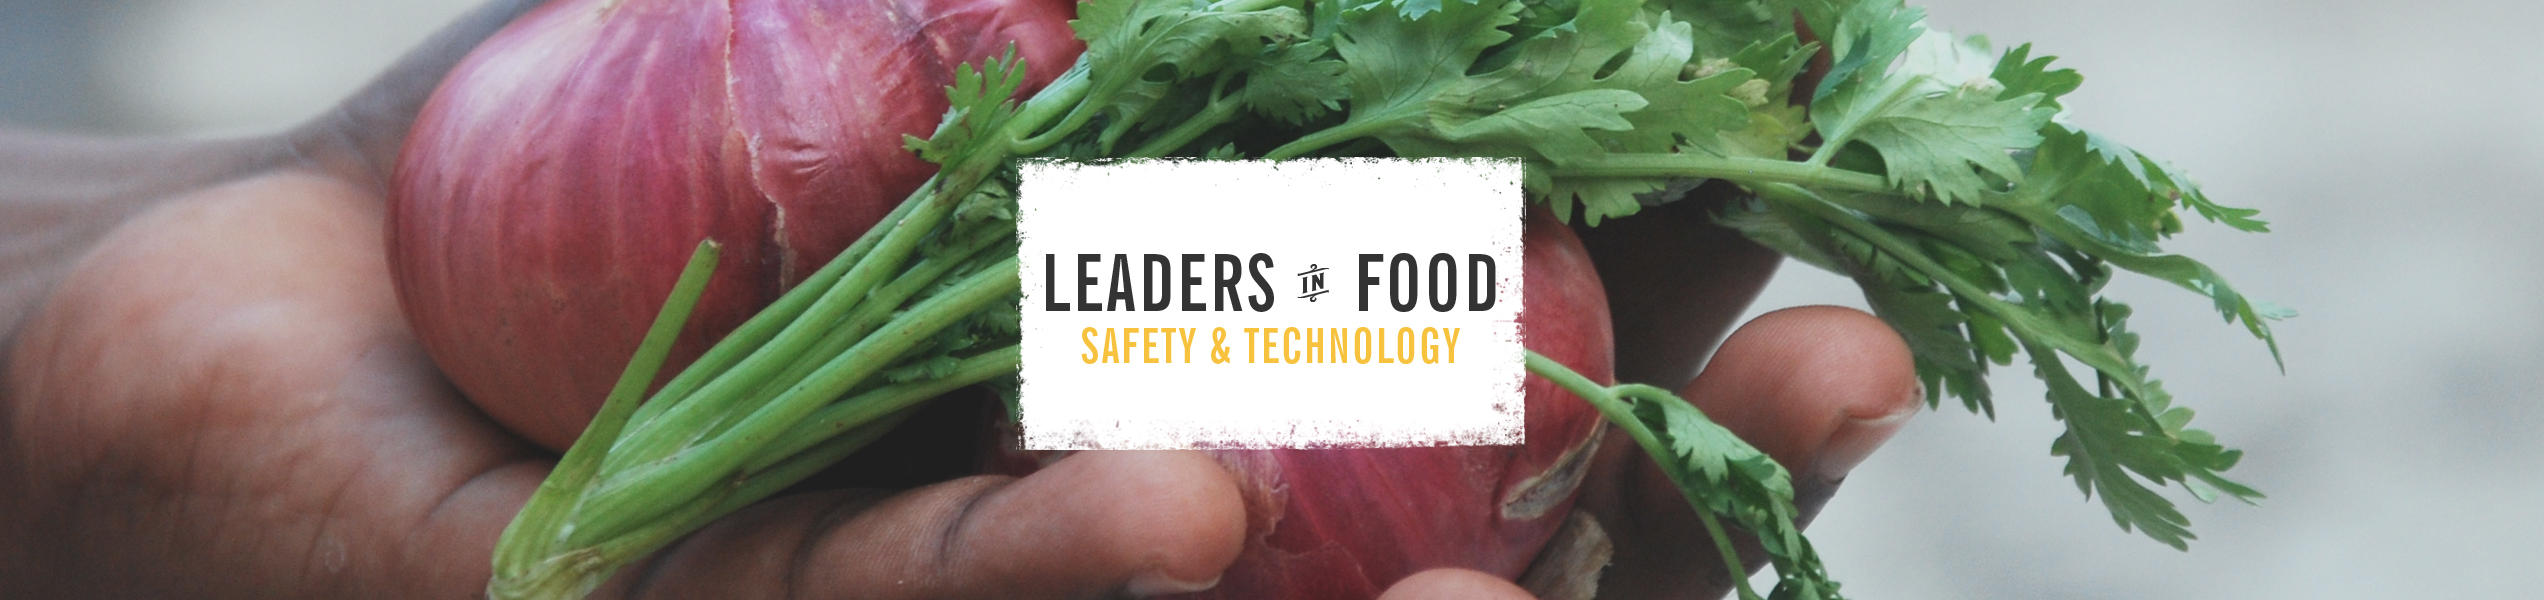 Leaders in Food